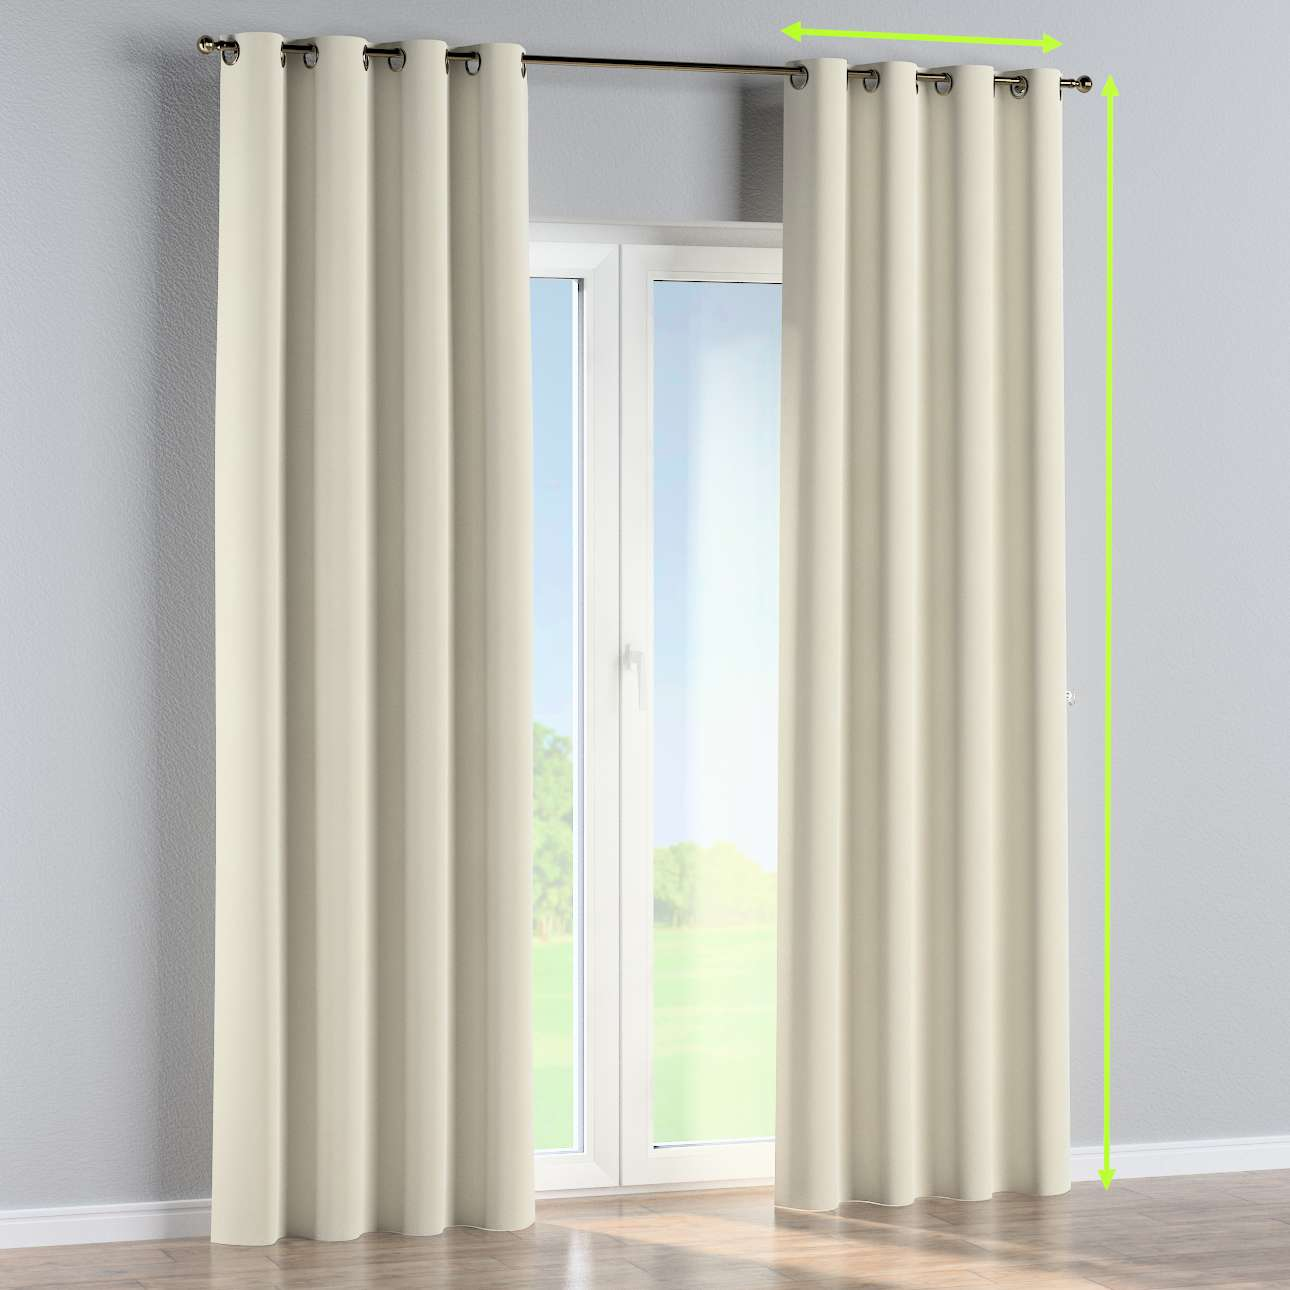 Eyelet lined curtains in collection Velvet, fabric: 704-10